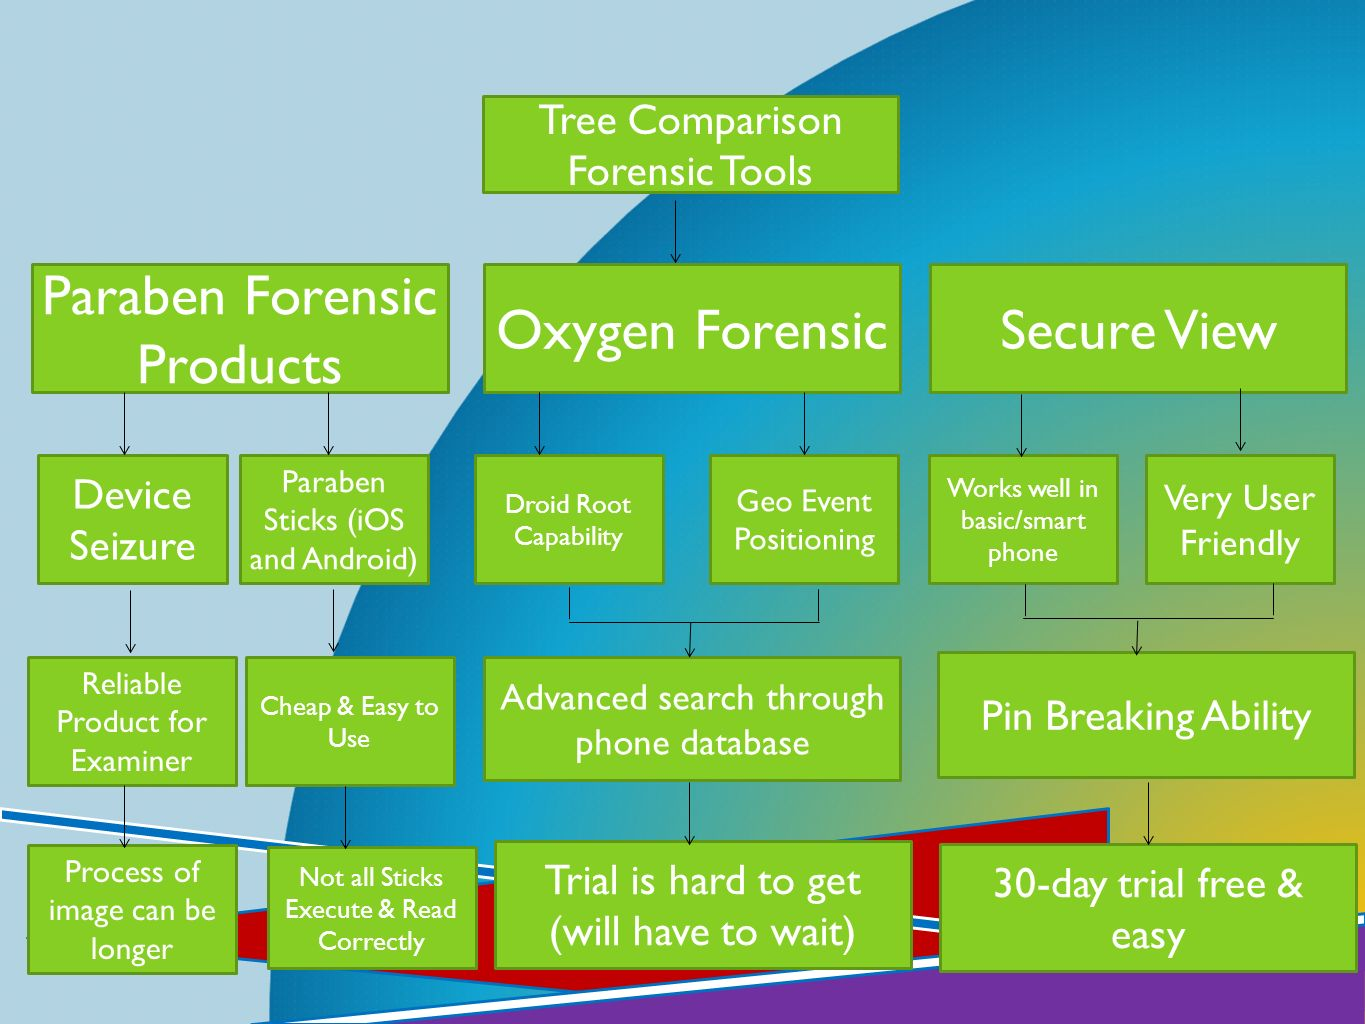 Paraben Forensic Products Oxygen Forensic Secure View